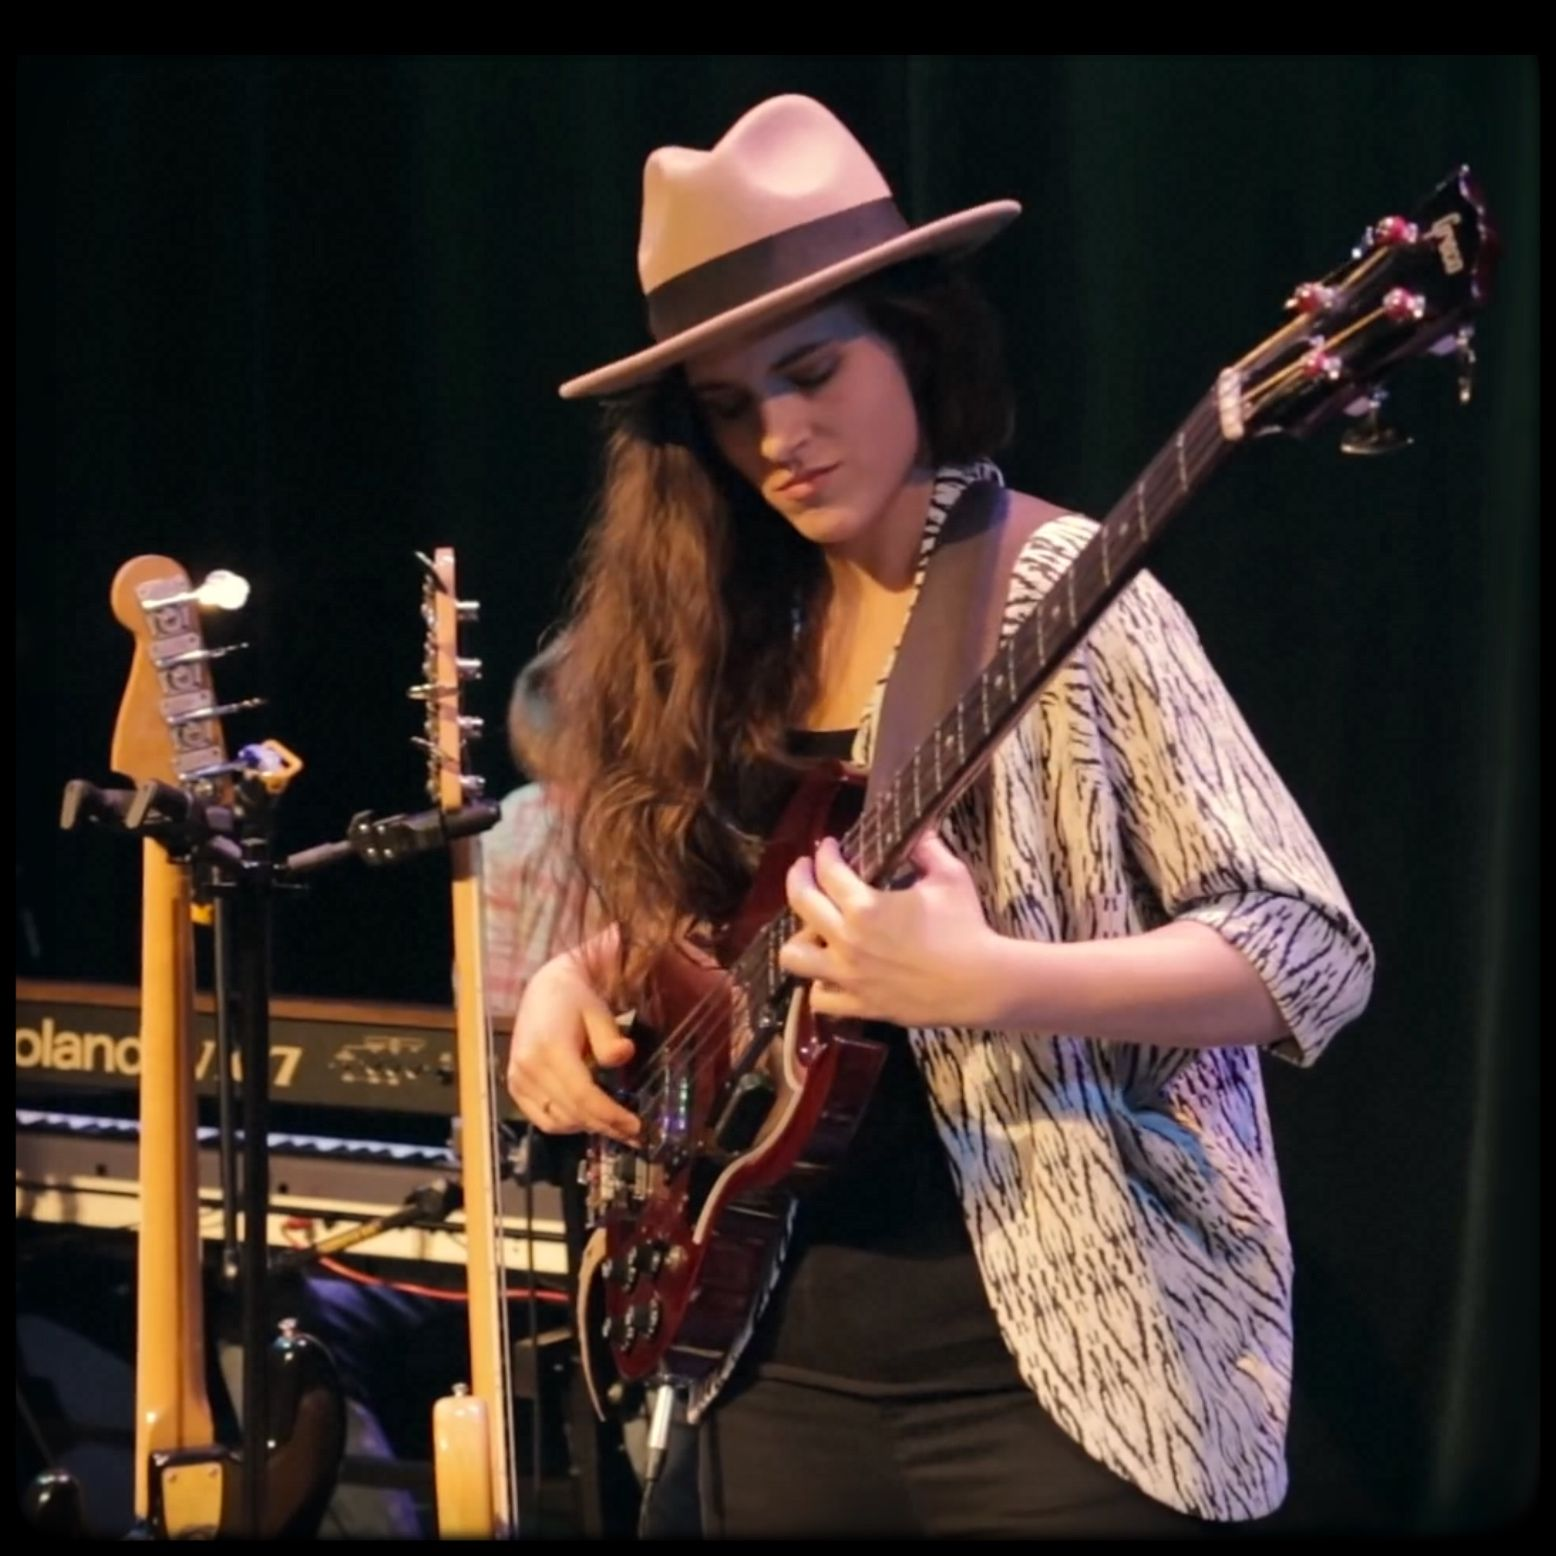 Ladies that Rock! | Female guitarist, Rock and roll girl